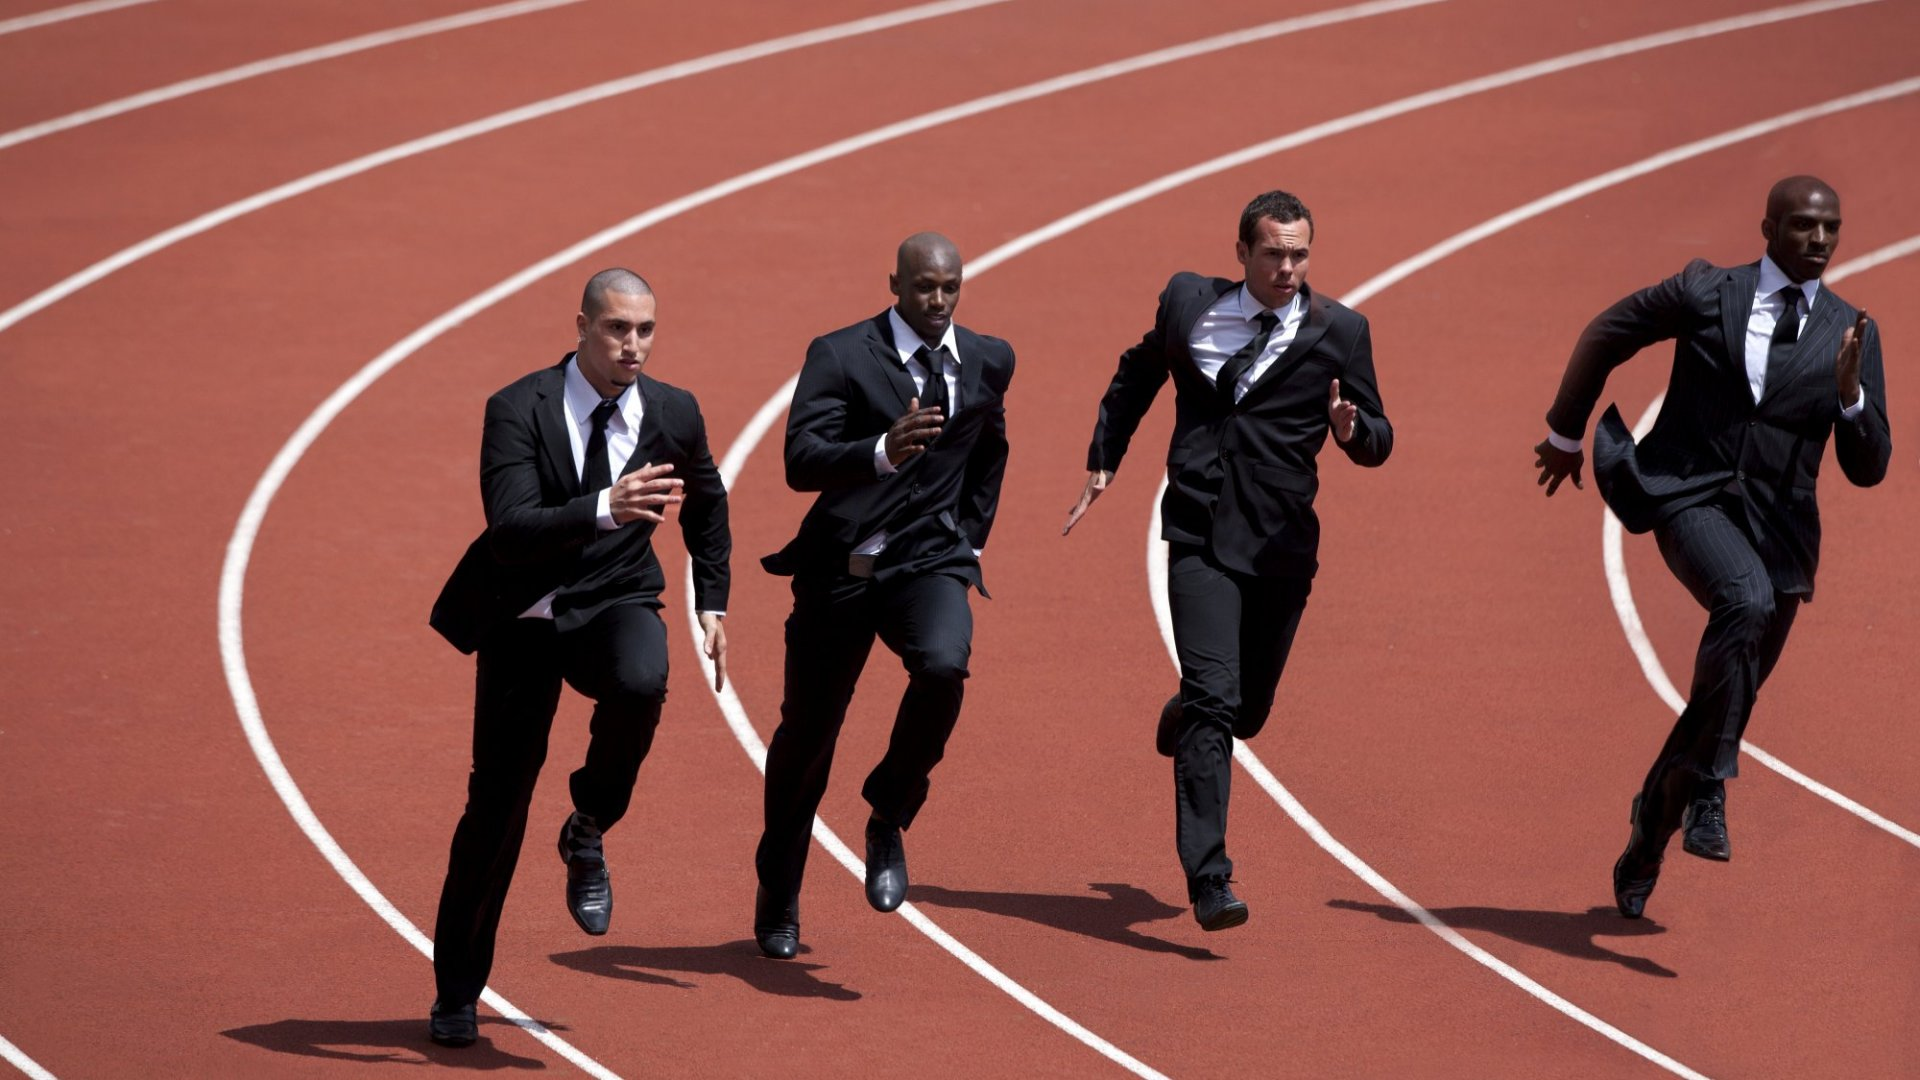 4 Ways to Compete (and Win) in a Crowded Market